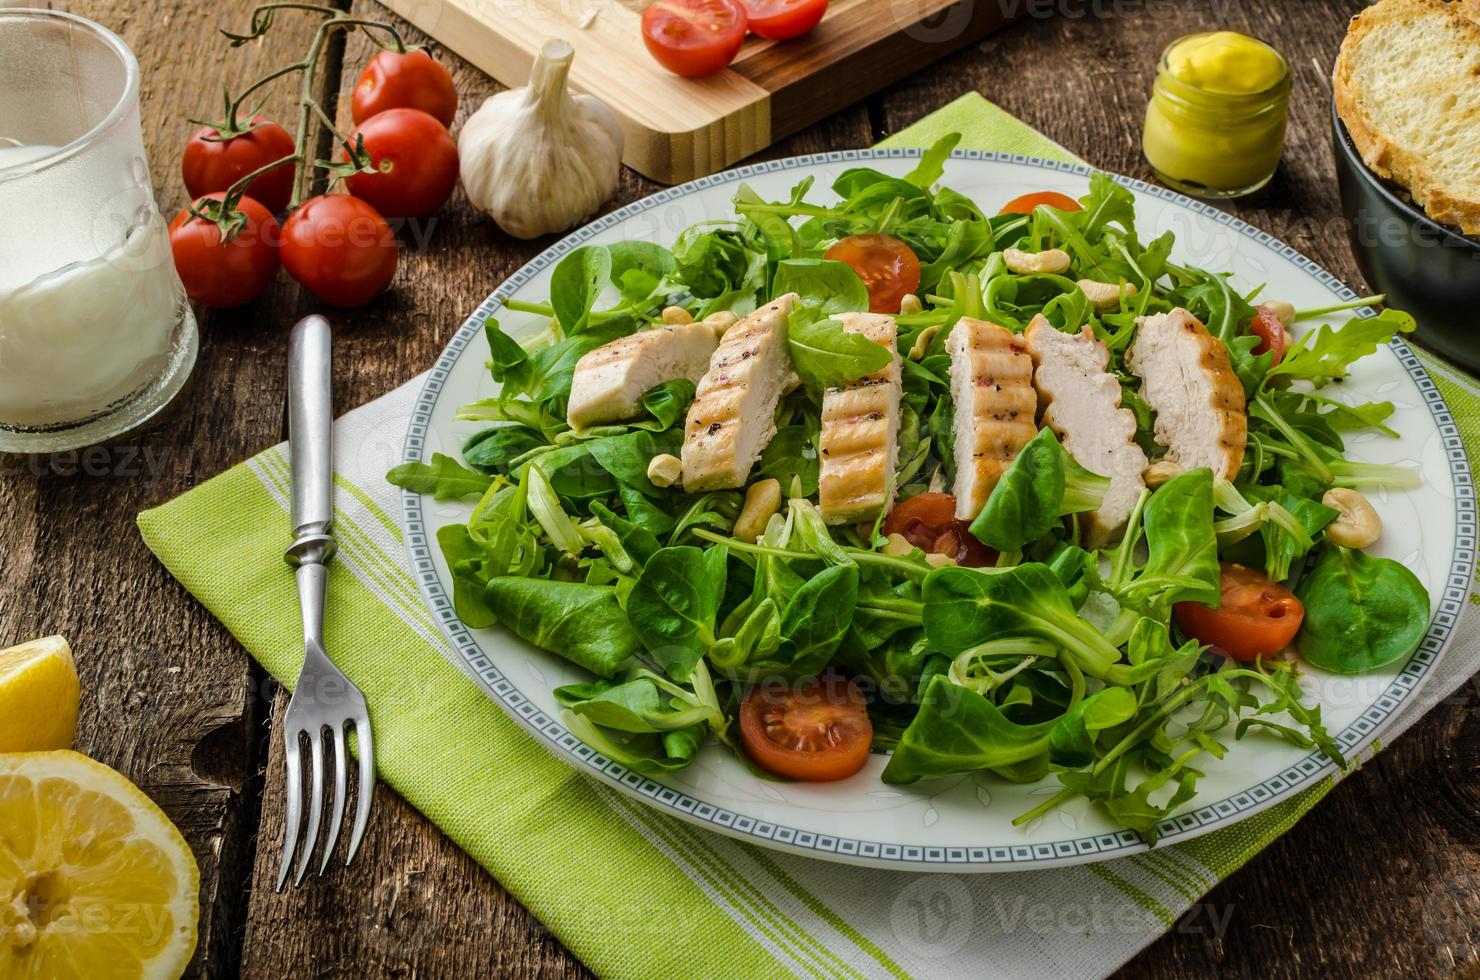 Arugula and lamb's lettuce with grilled chiken photo